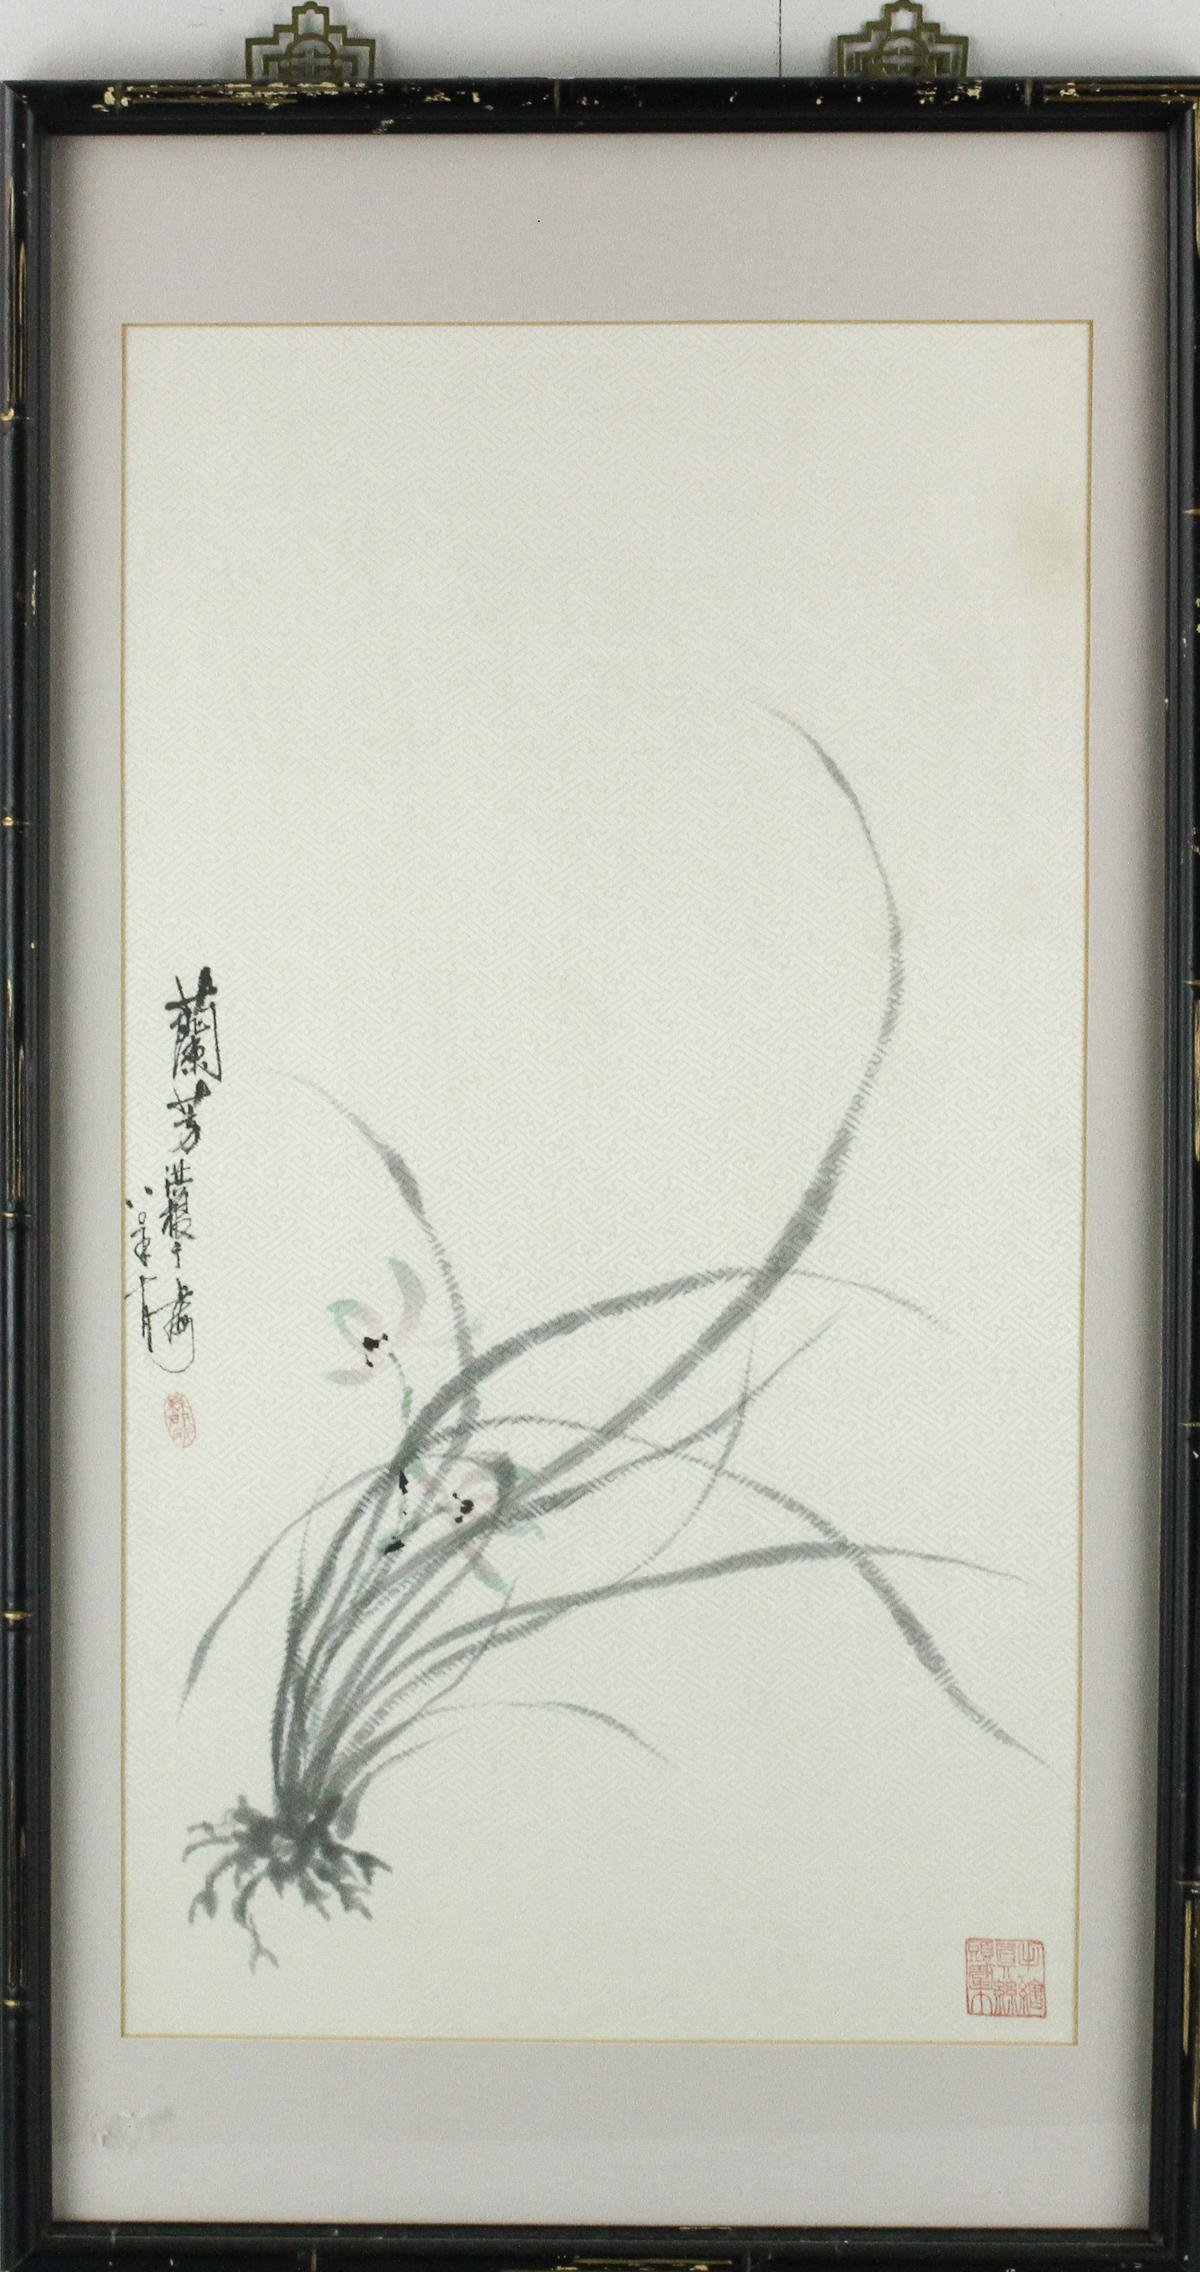 Signed Chinese Watercolor Painting on Silk